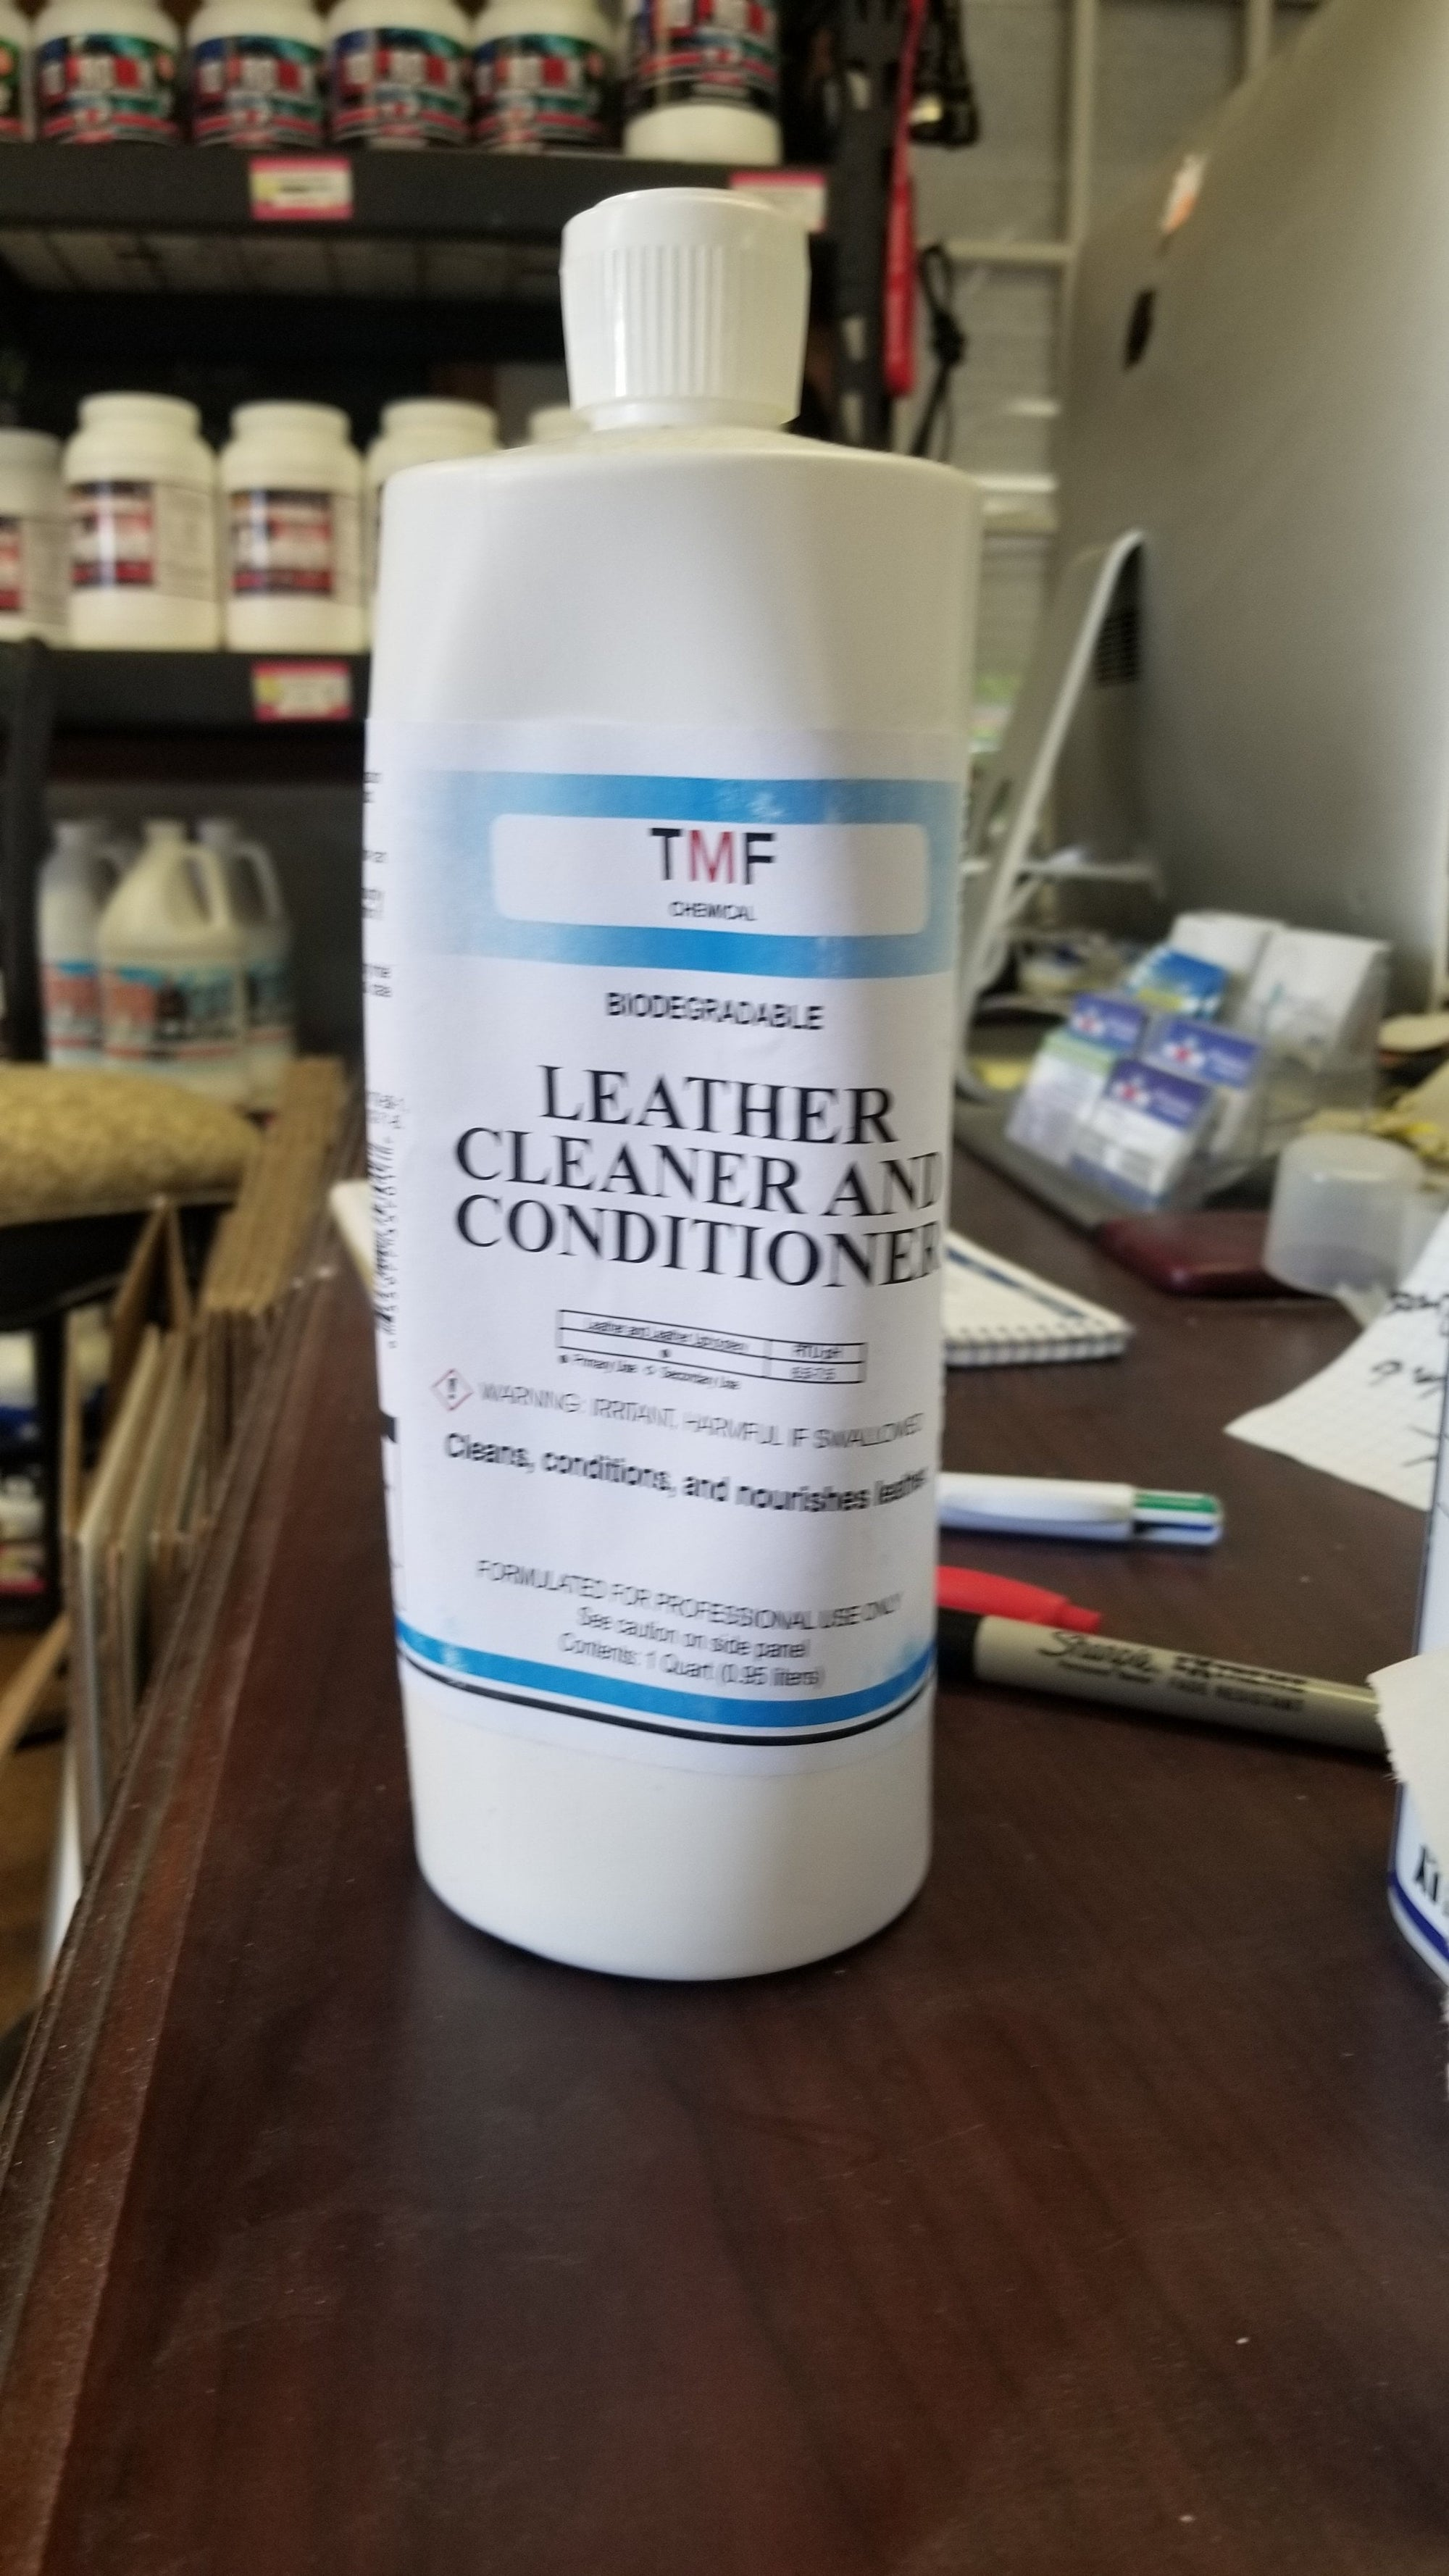 Leather Cleaner / Conditioner - TMF Store: Carpet Cleaning Equipment & Chemicals from TruckMountForums